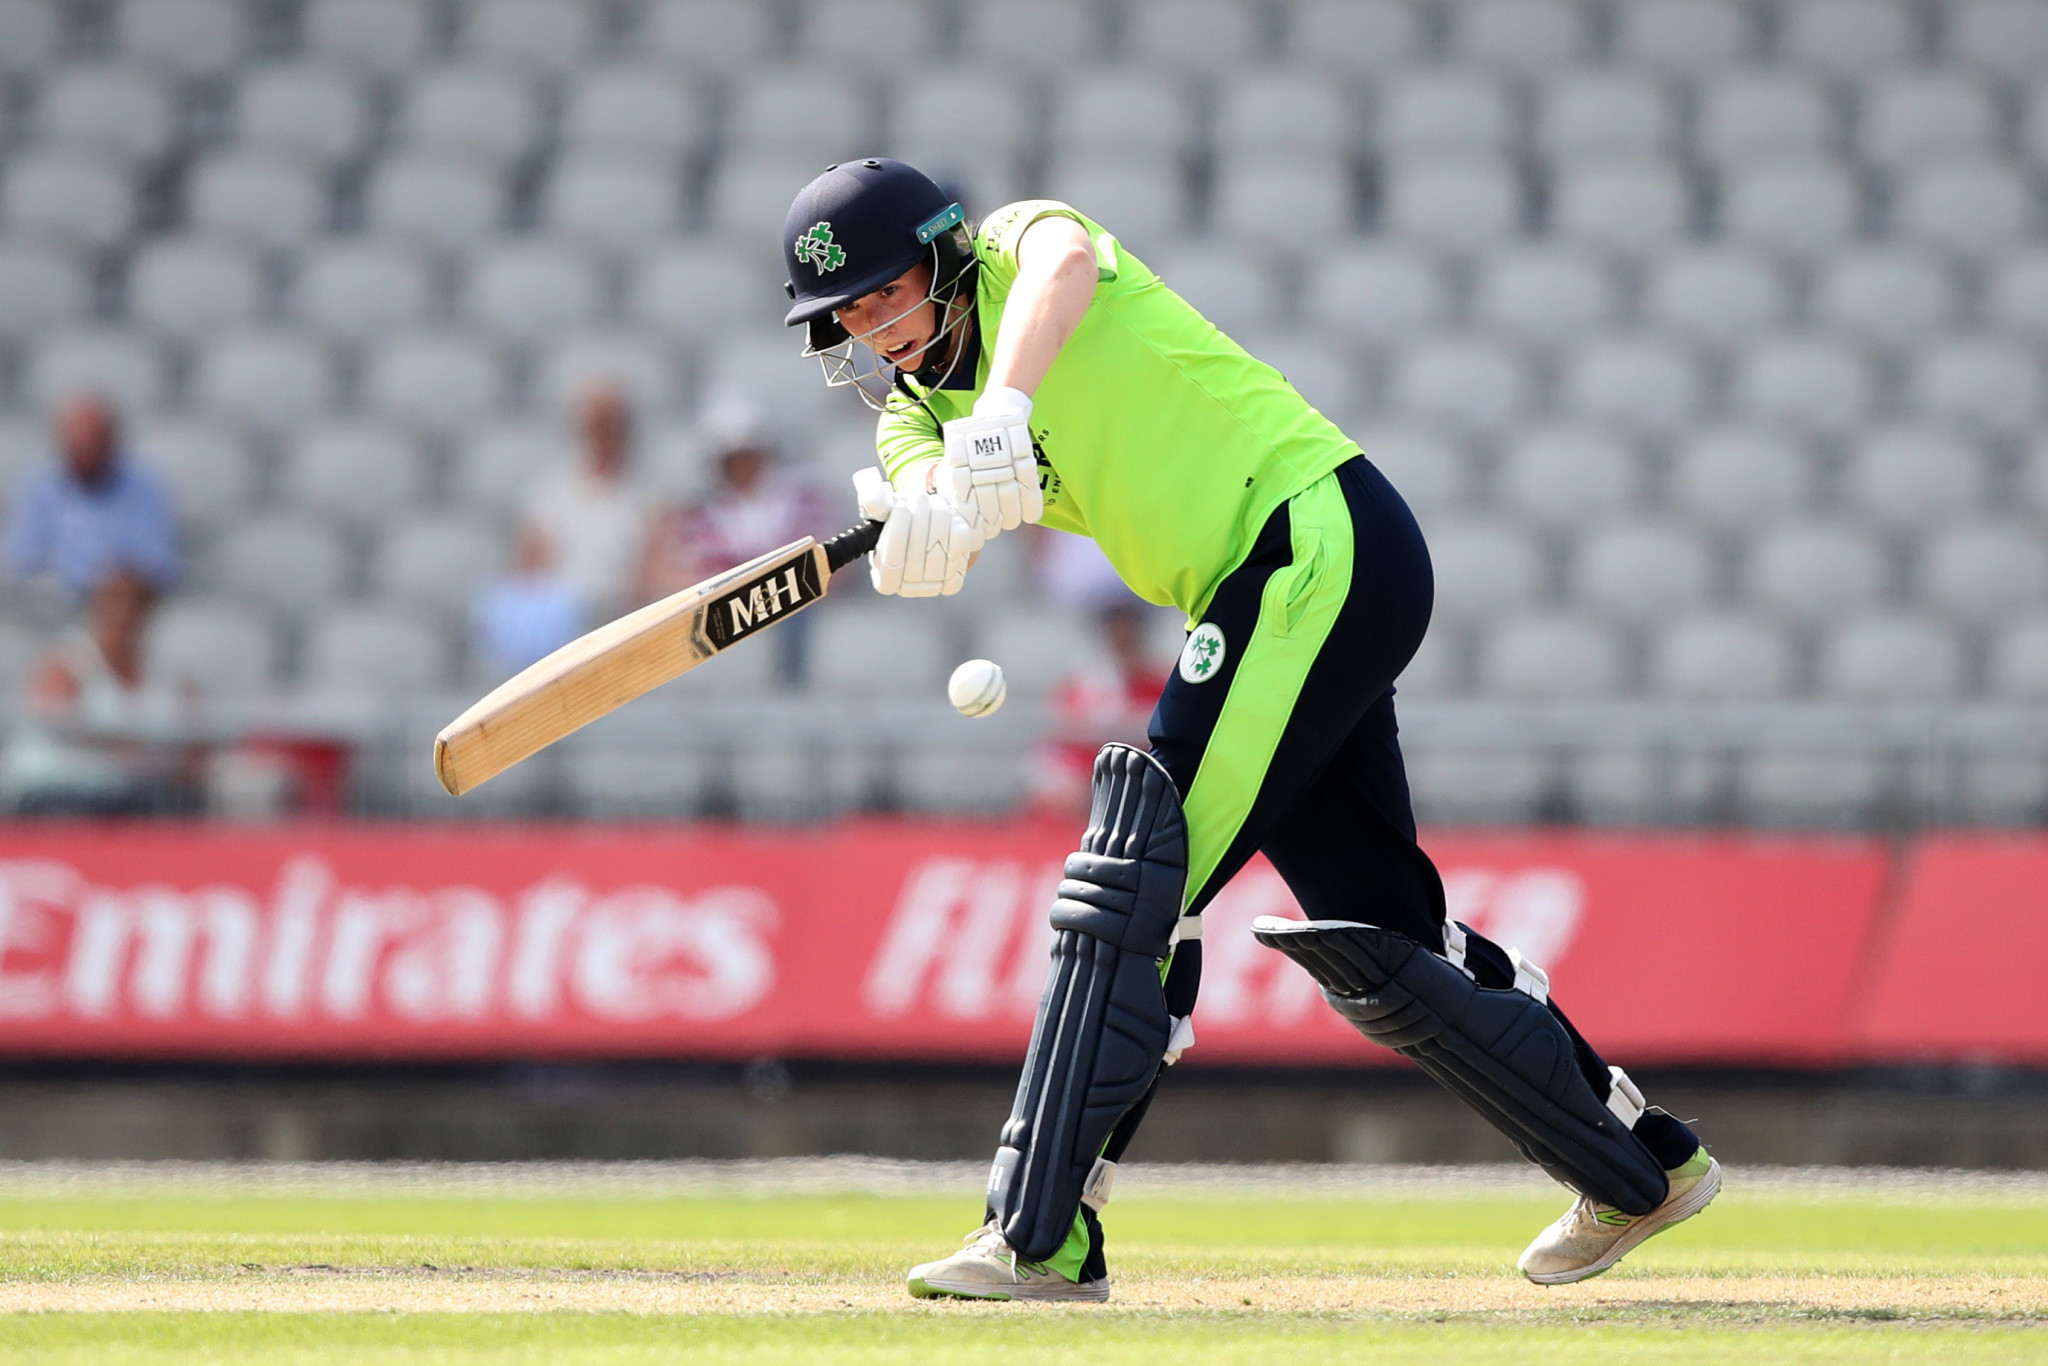 Ireland favourites in Spain at ICC Women's T20 World Cup Europe Qualifier